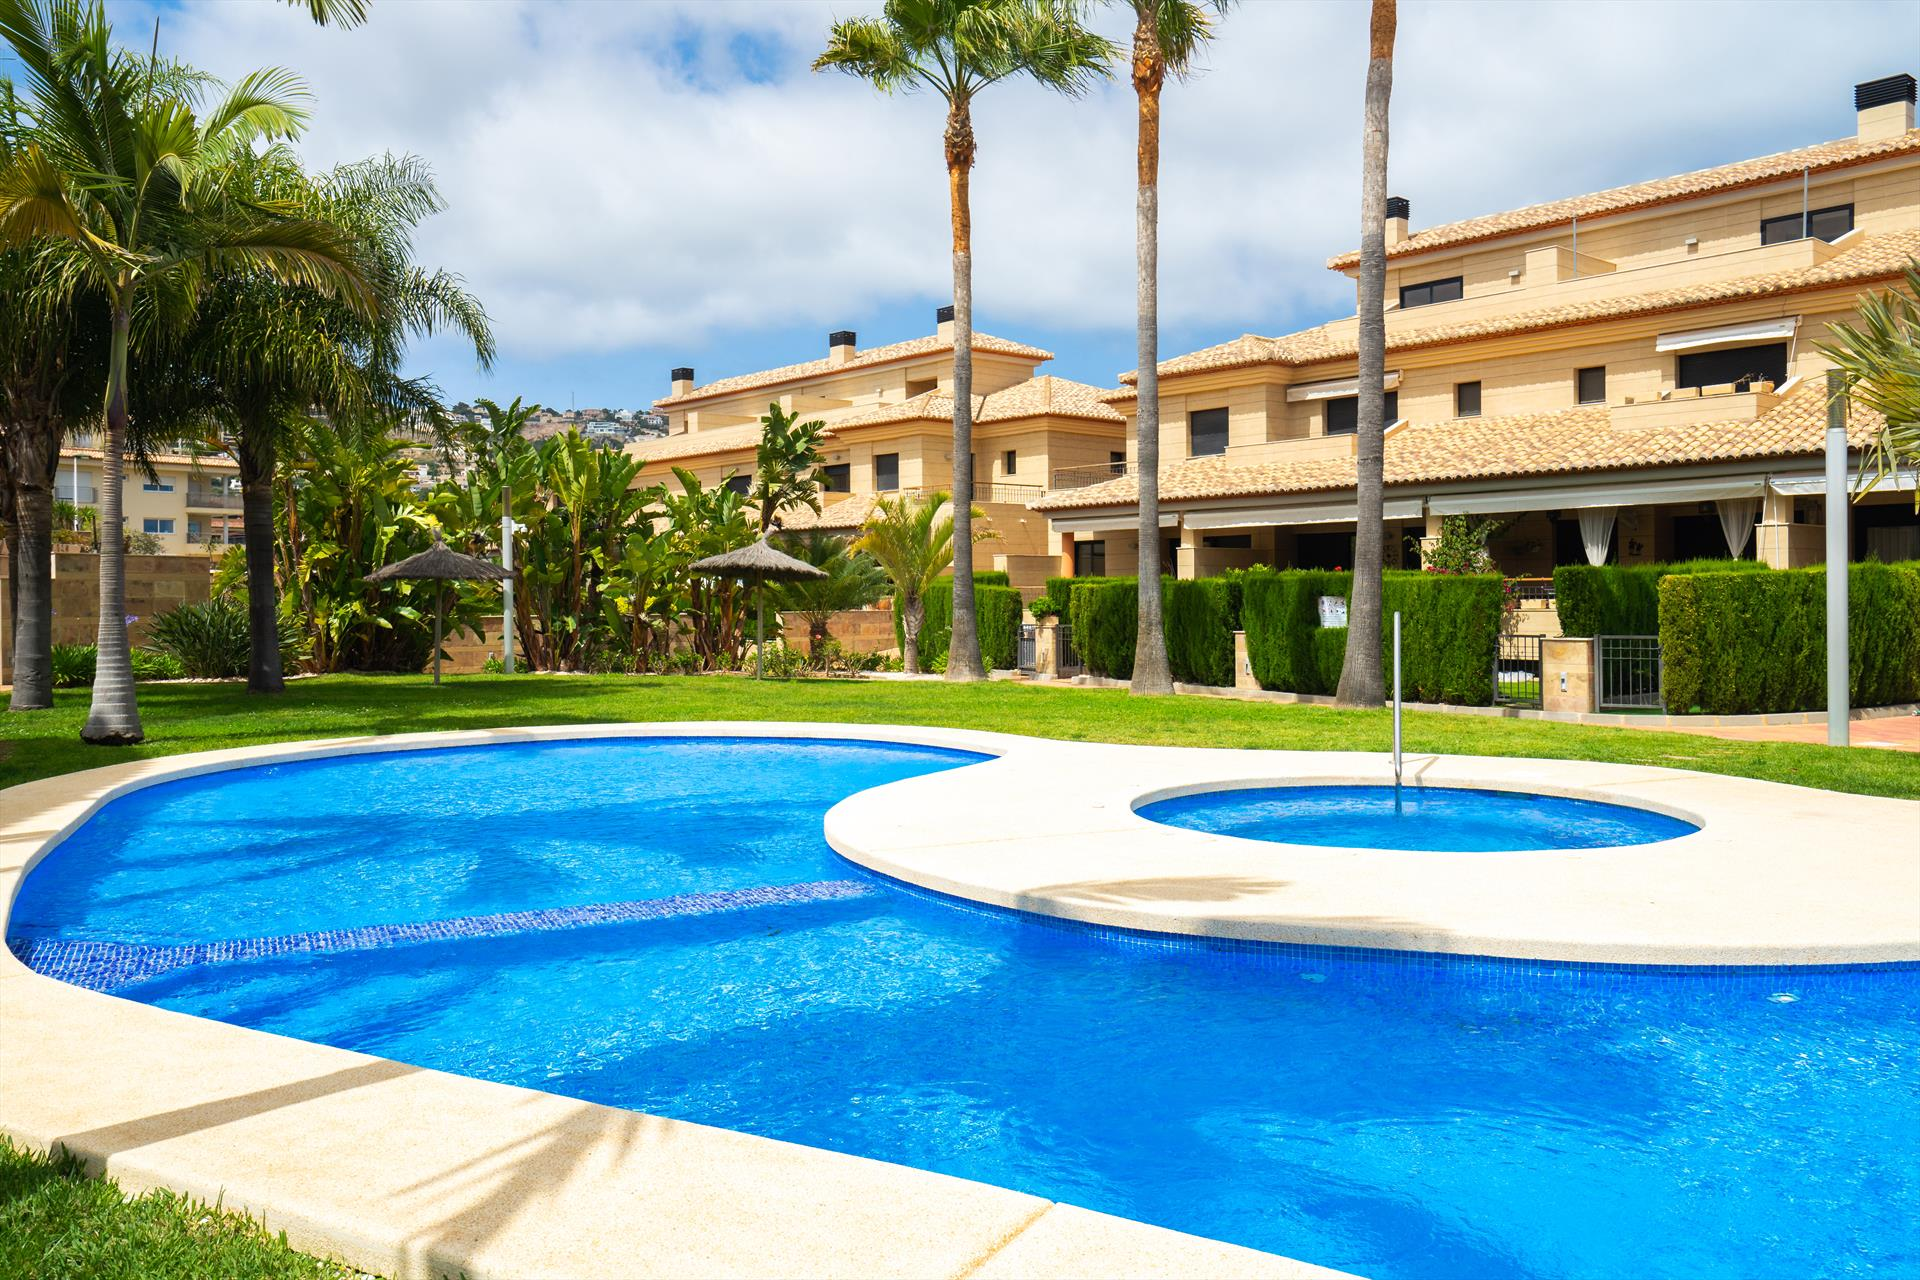 Amalia, Beautiful and cheerful apartment in Javea, on the Costa Blanca, Spain  with communal pool for 2 persons.....